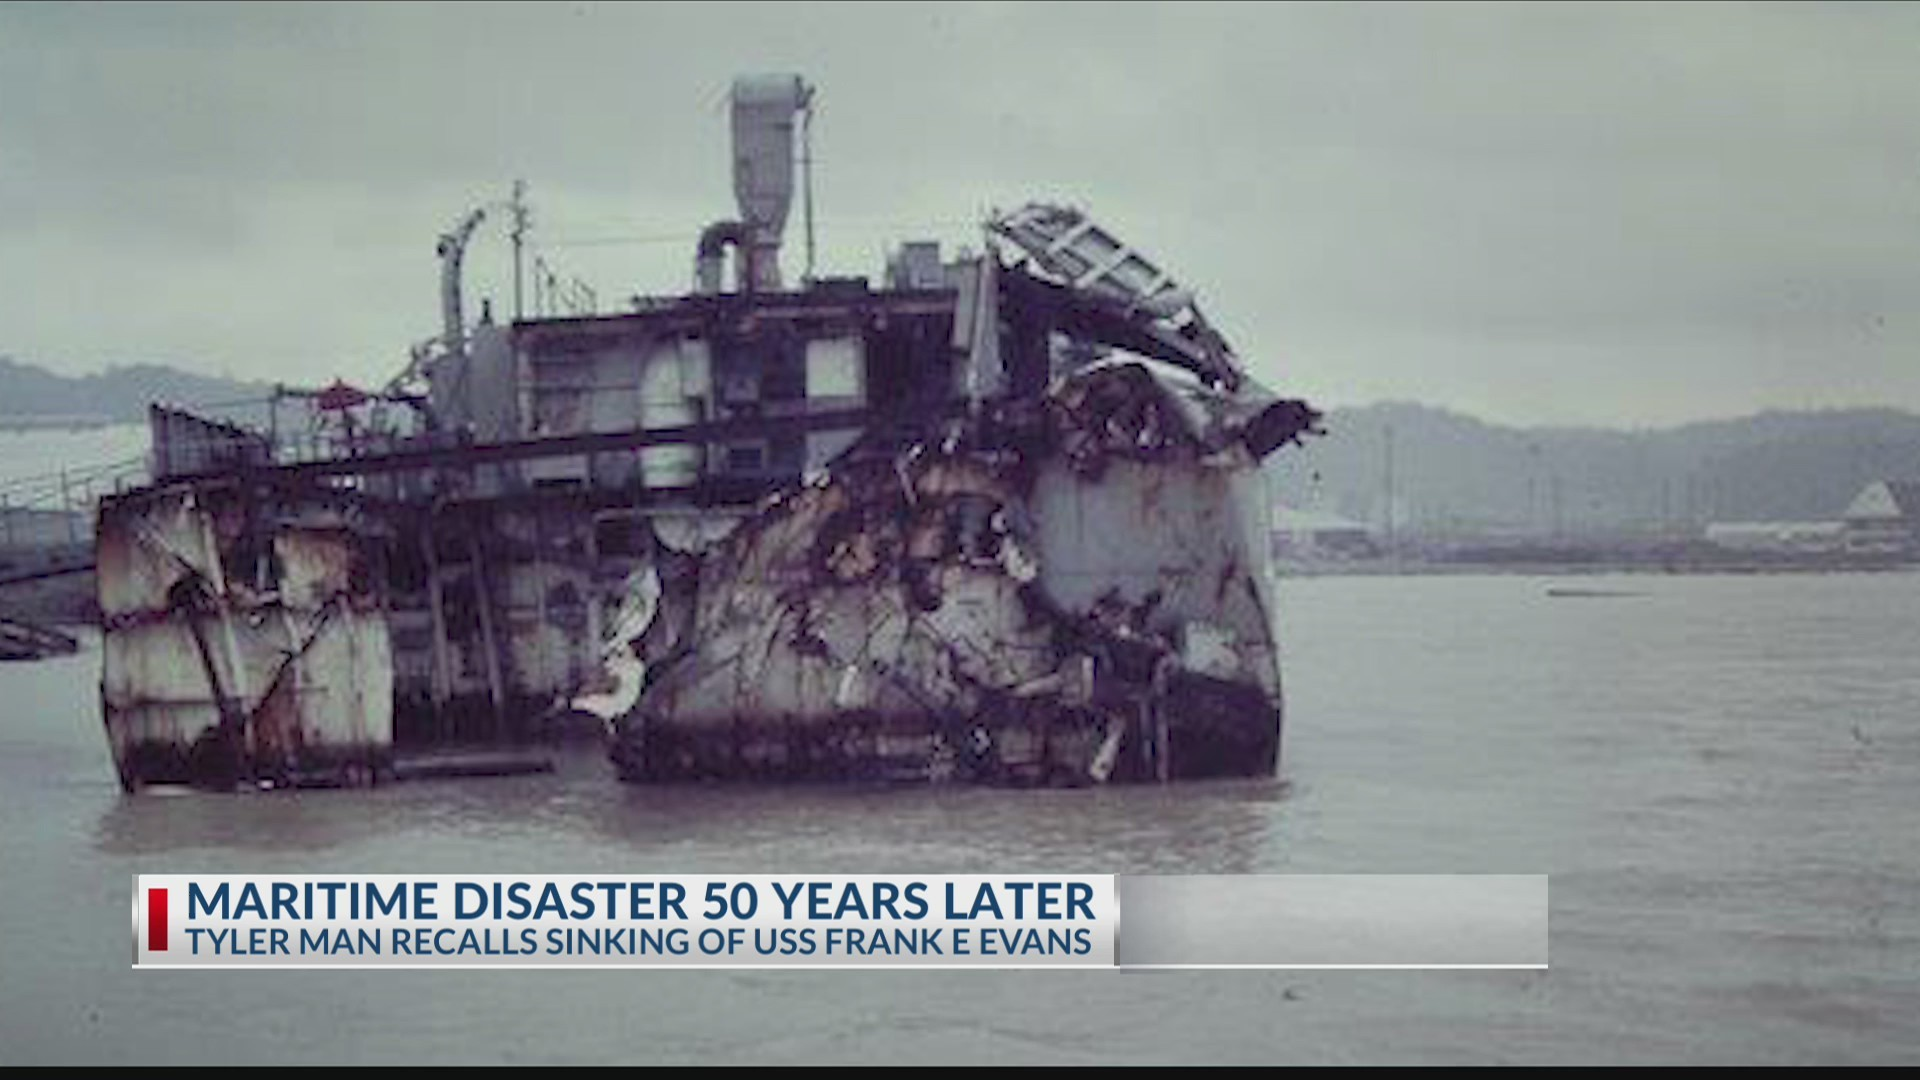 50TH Anniversary of the maritime disaster